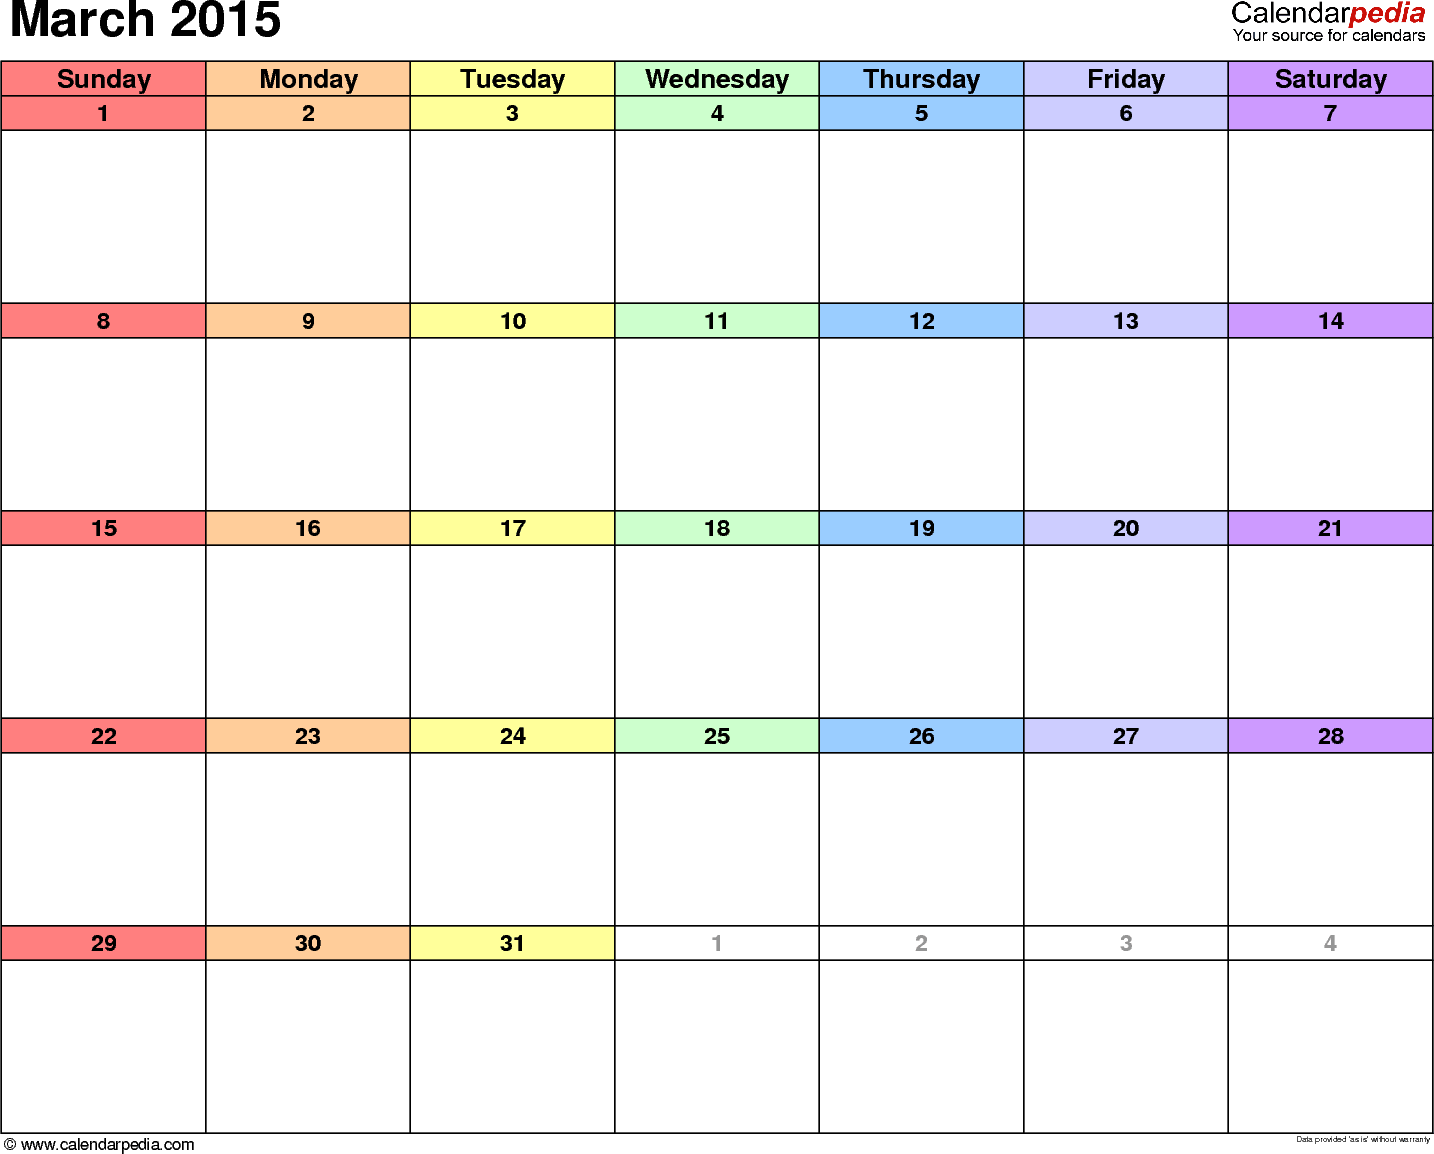 March 2015 calendar printable template